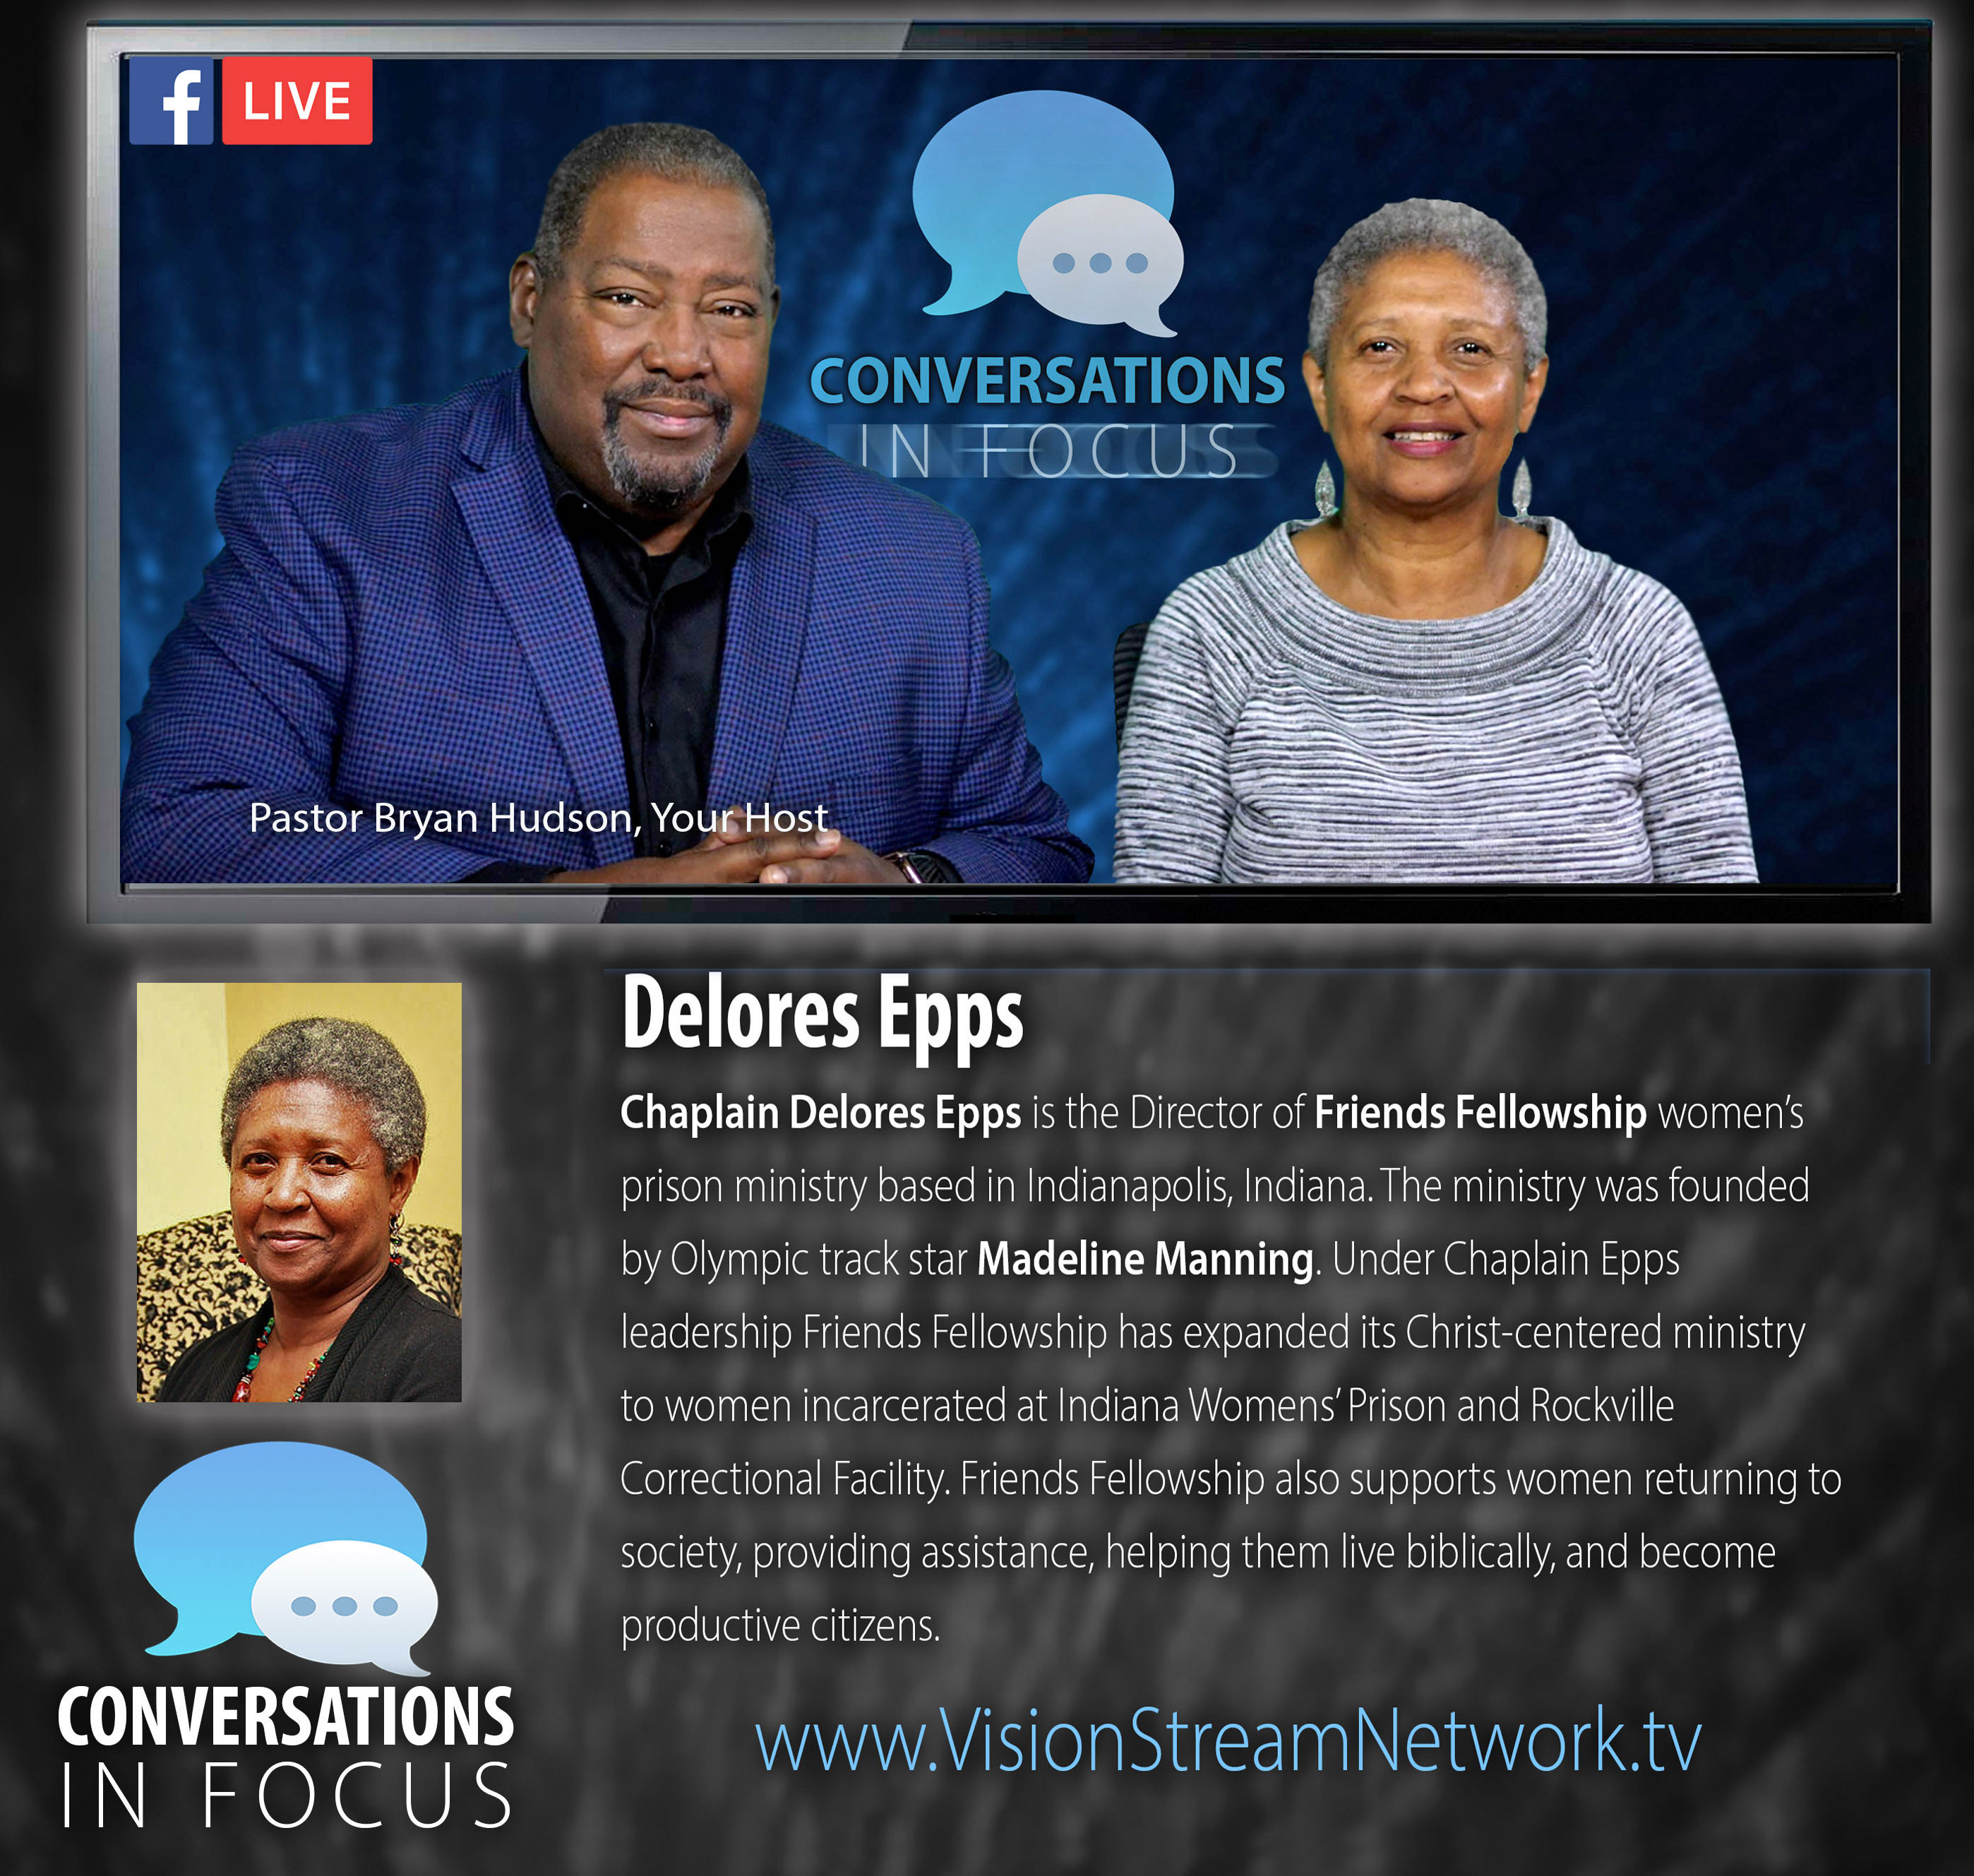 Chaplain Delores Epps